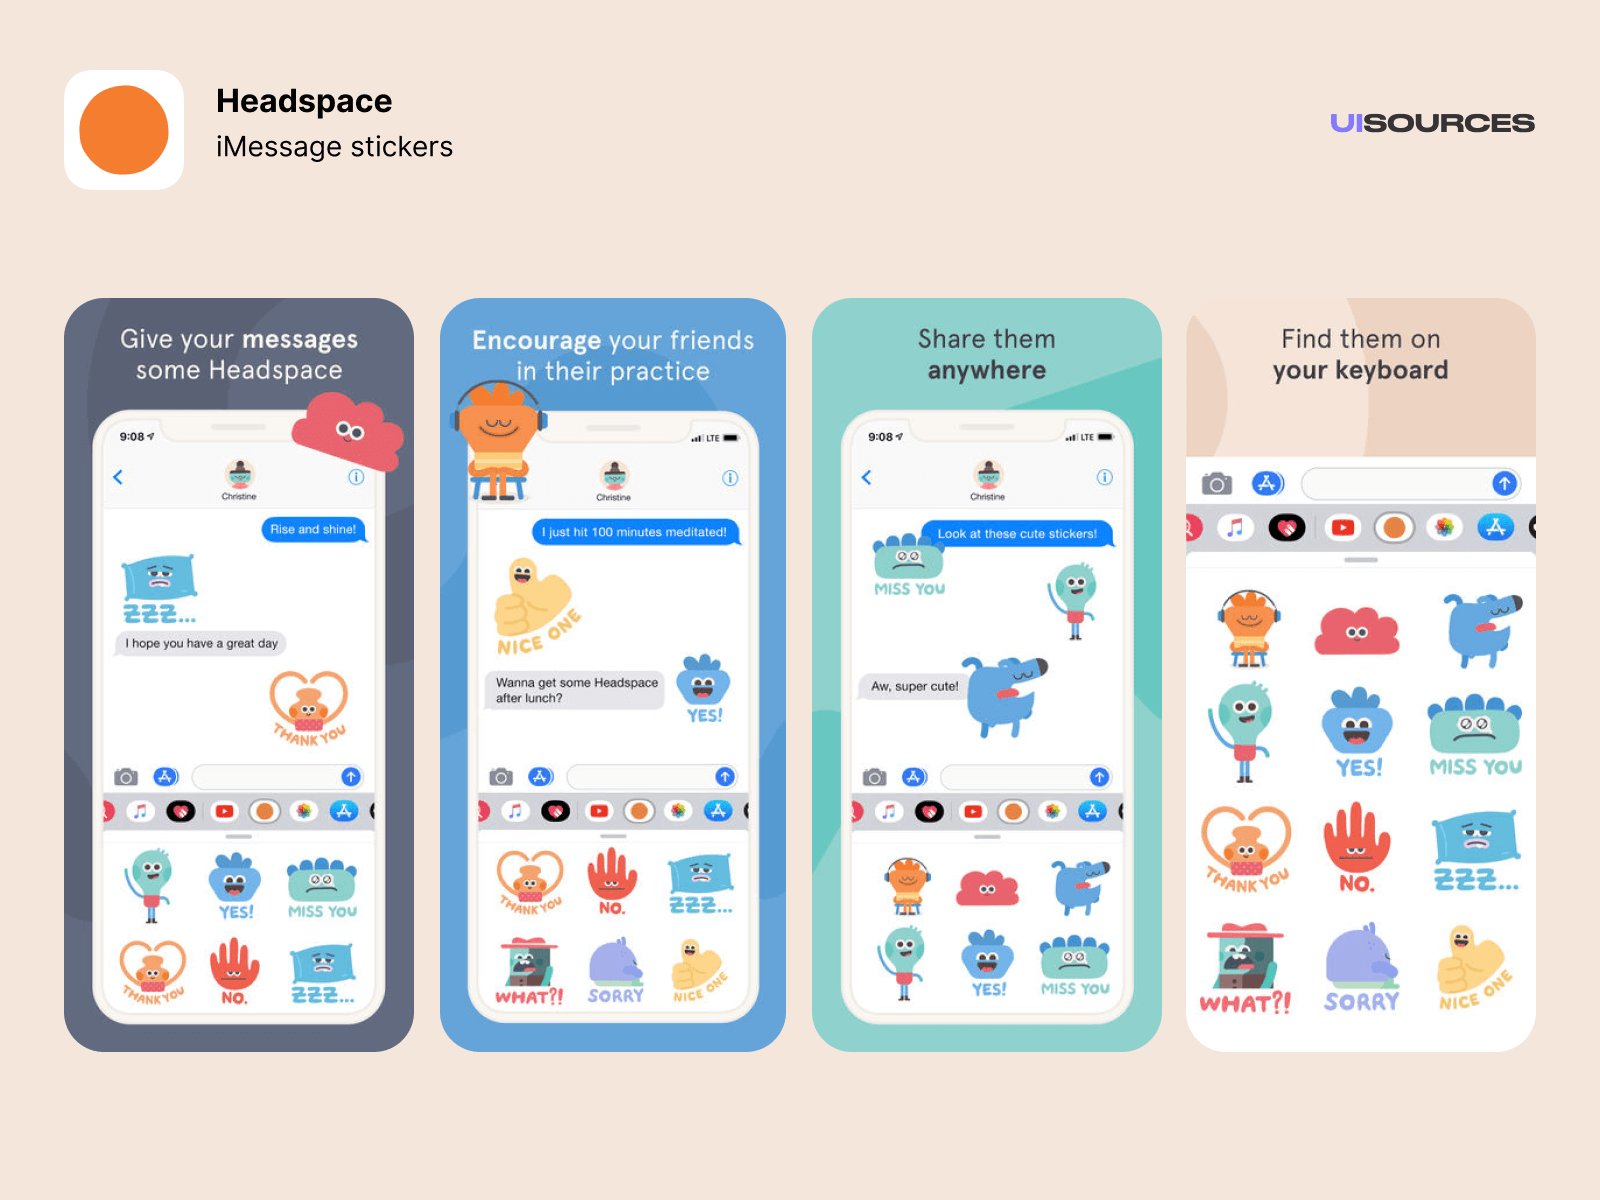 Headspace - App Store screenshots | UI Sources